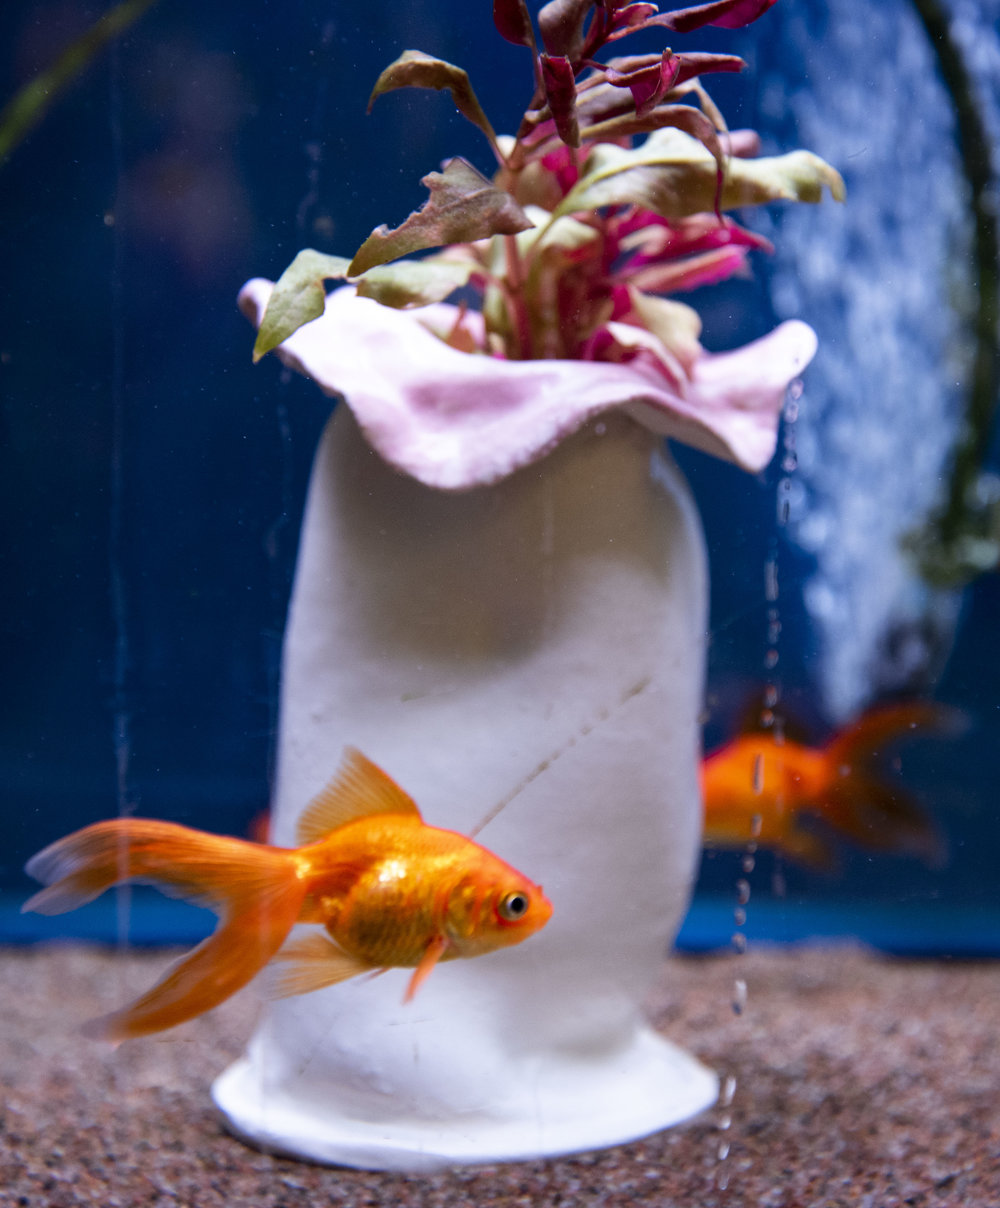 Goldfish - The goldfish is native to East Asia. It's a relatively small member of the carp family and one of the most commonly kept aquarium fish. They breeds vary in size, body shape, fin configuration and coloration.